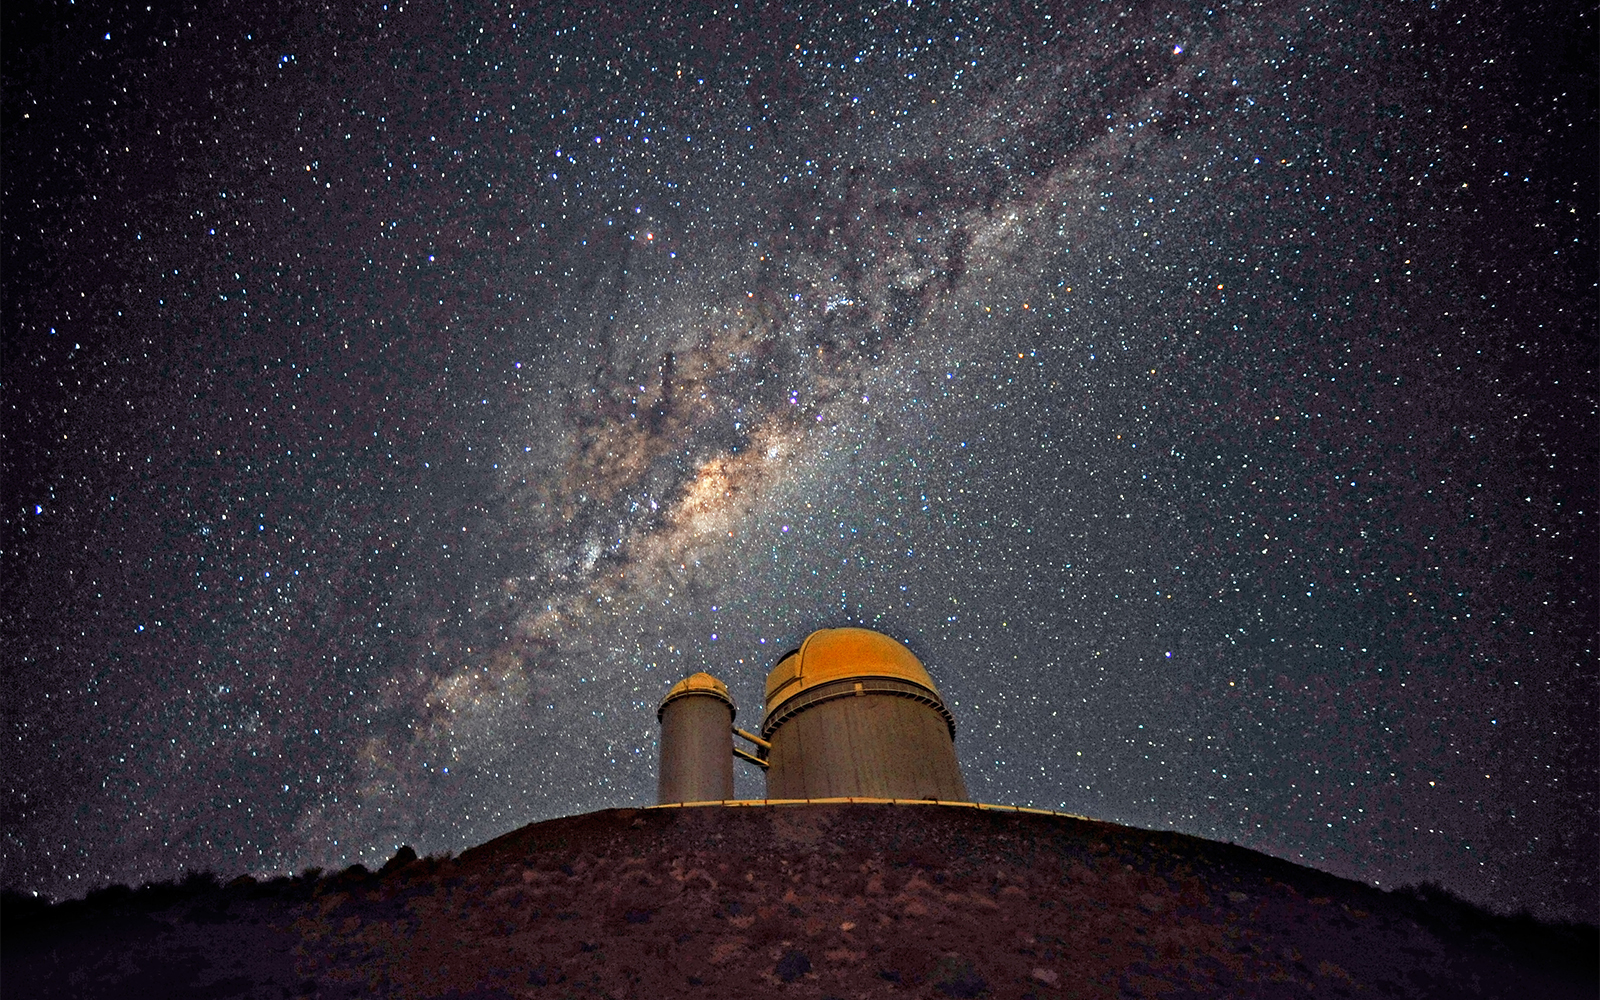 The Milky Way Galaxy is seen across the night skt over a domed telescope.